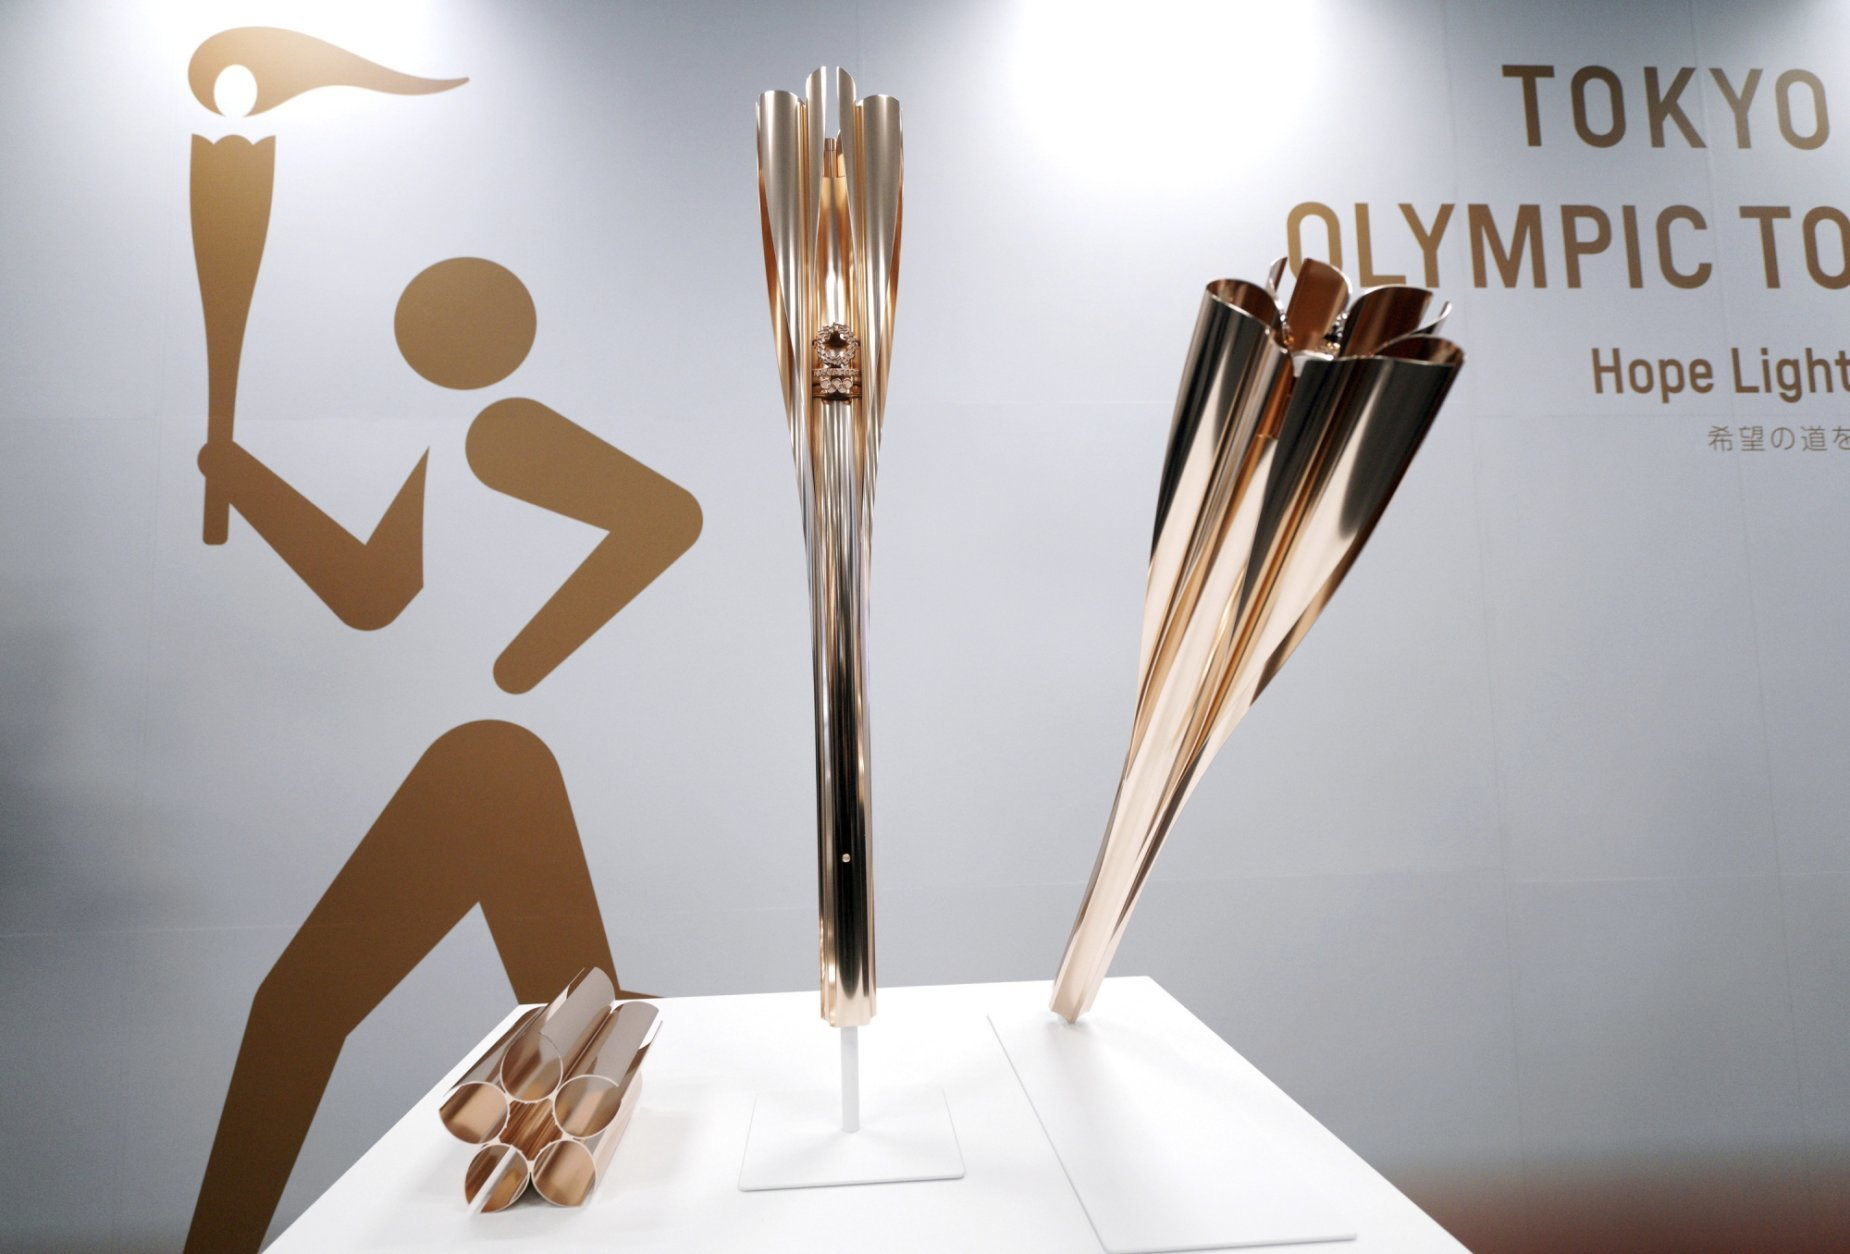 The Olympic torches of the Tokyo 2020 Olympic Games are displayed during a press conference in Tokyo Wednesday, March 20, 2019. The Tokyo Olympics open on July 24, 2020. (AP Photo/Eugene Hoshiko)